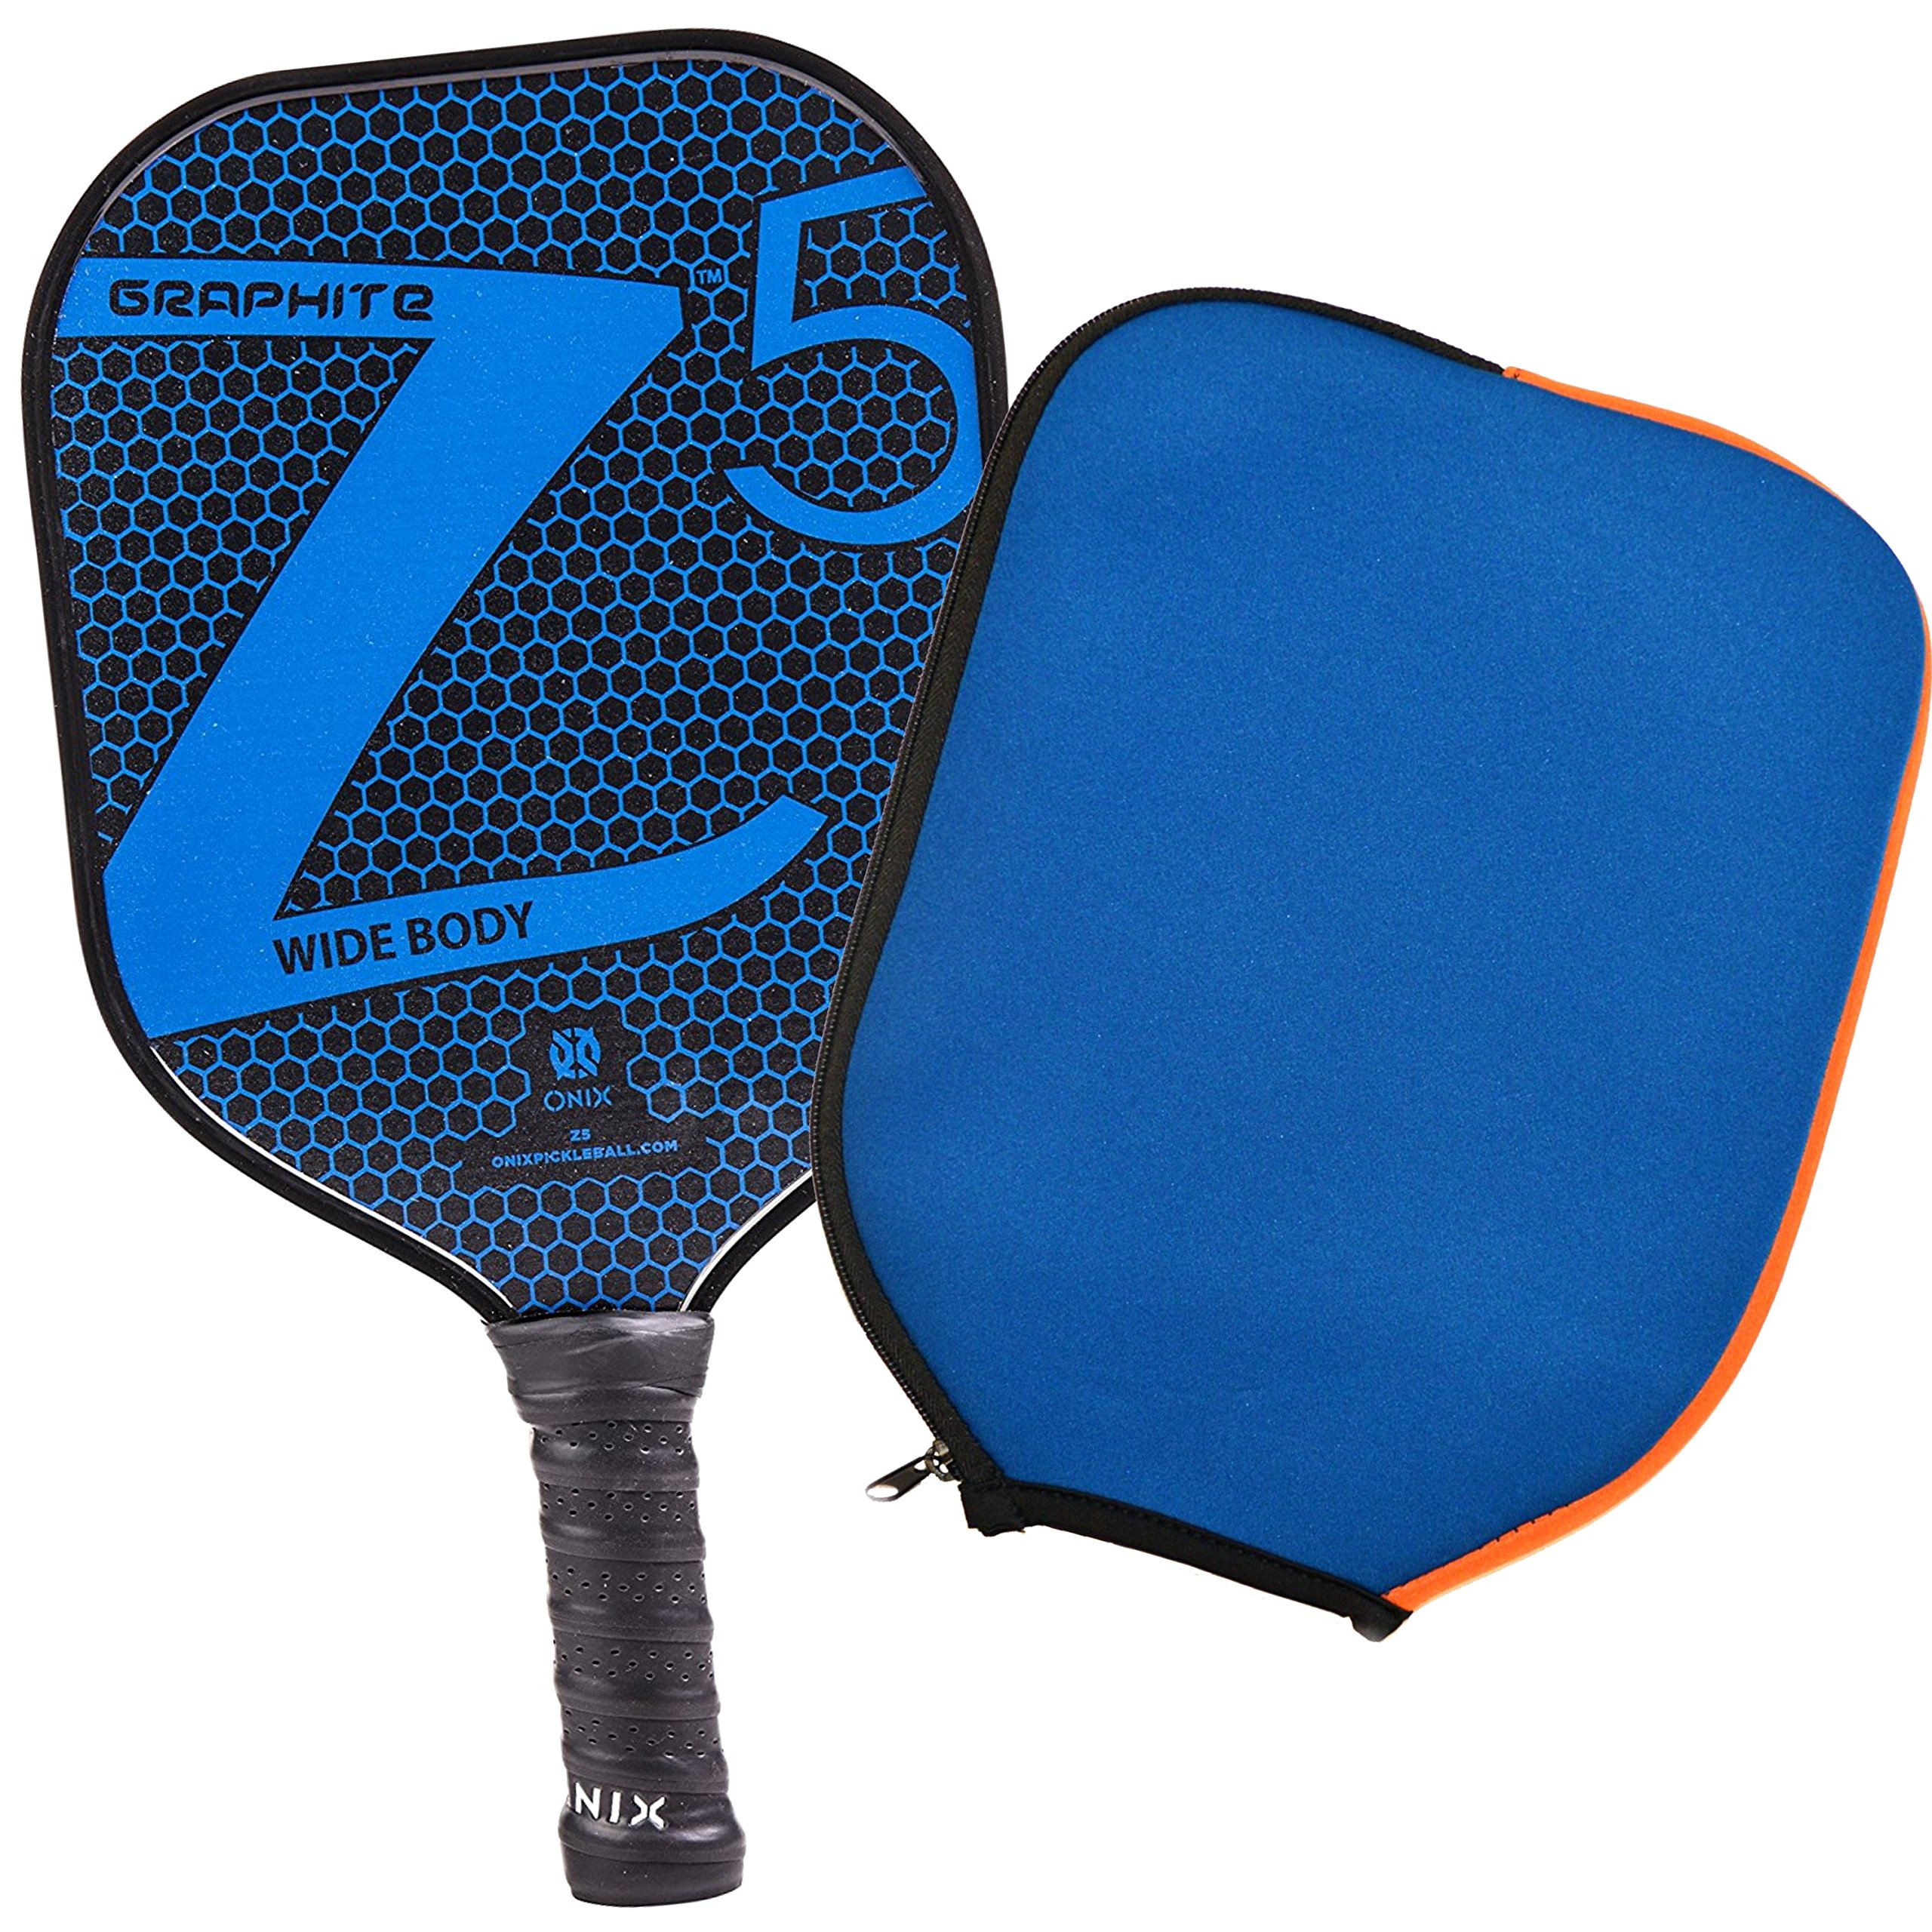 Onix Z5 Graphite Pickleball Paddle and Paddle Cover (Blue) || Gift Pack by Onix